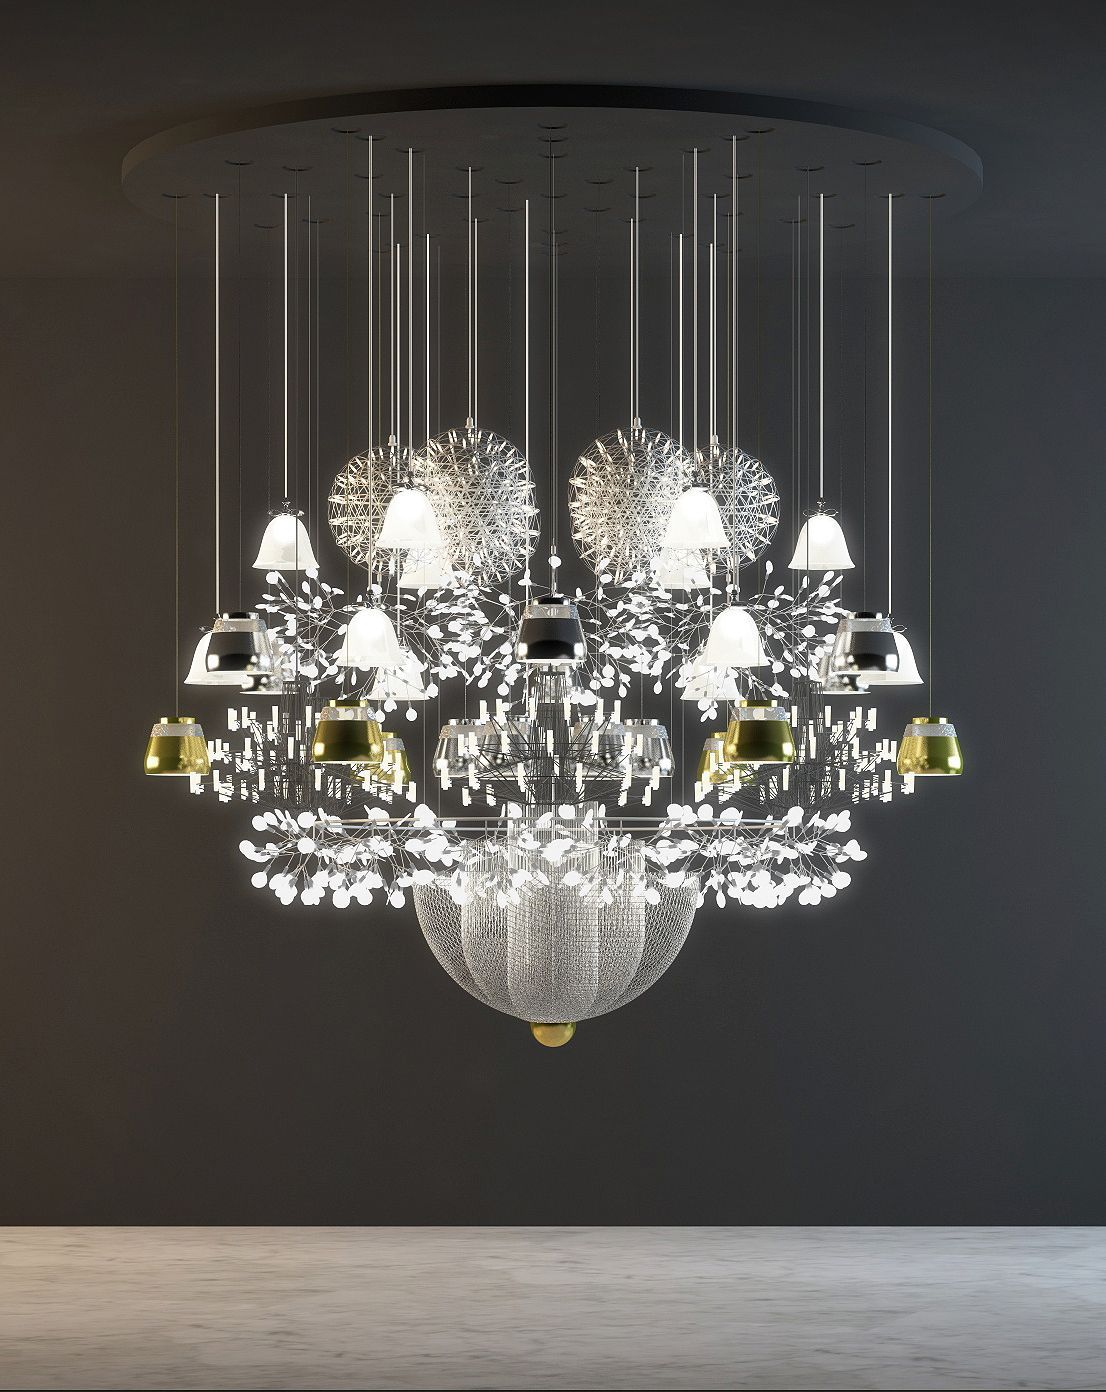 Pin美迪思灯饰厂 On 吊灯 In 2019 | Pendant Lighting Pertaining To Alverez 4 Light Drum Chandeliers (View 18 of 30)